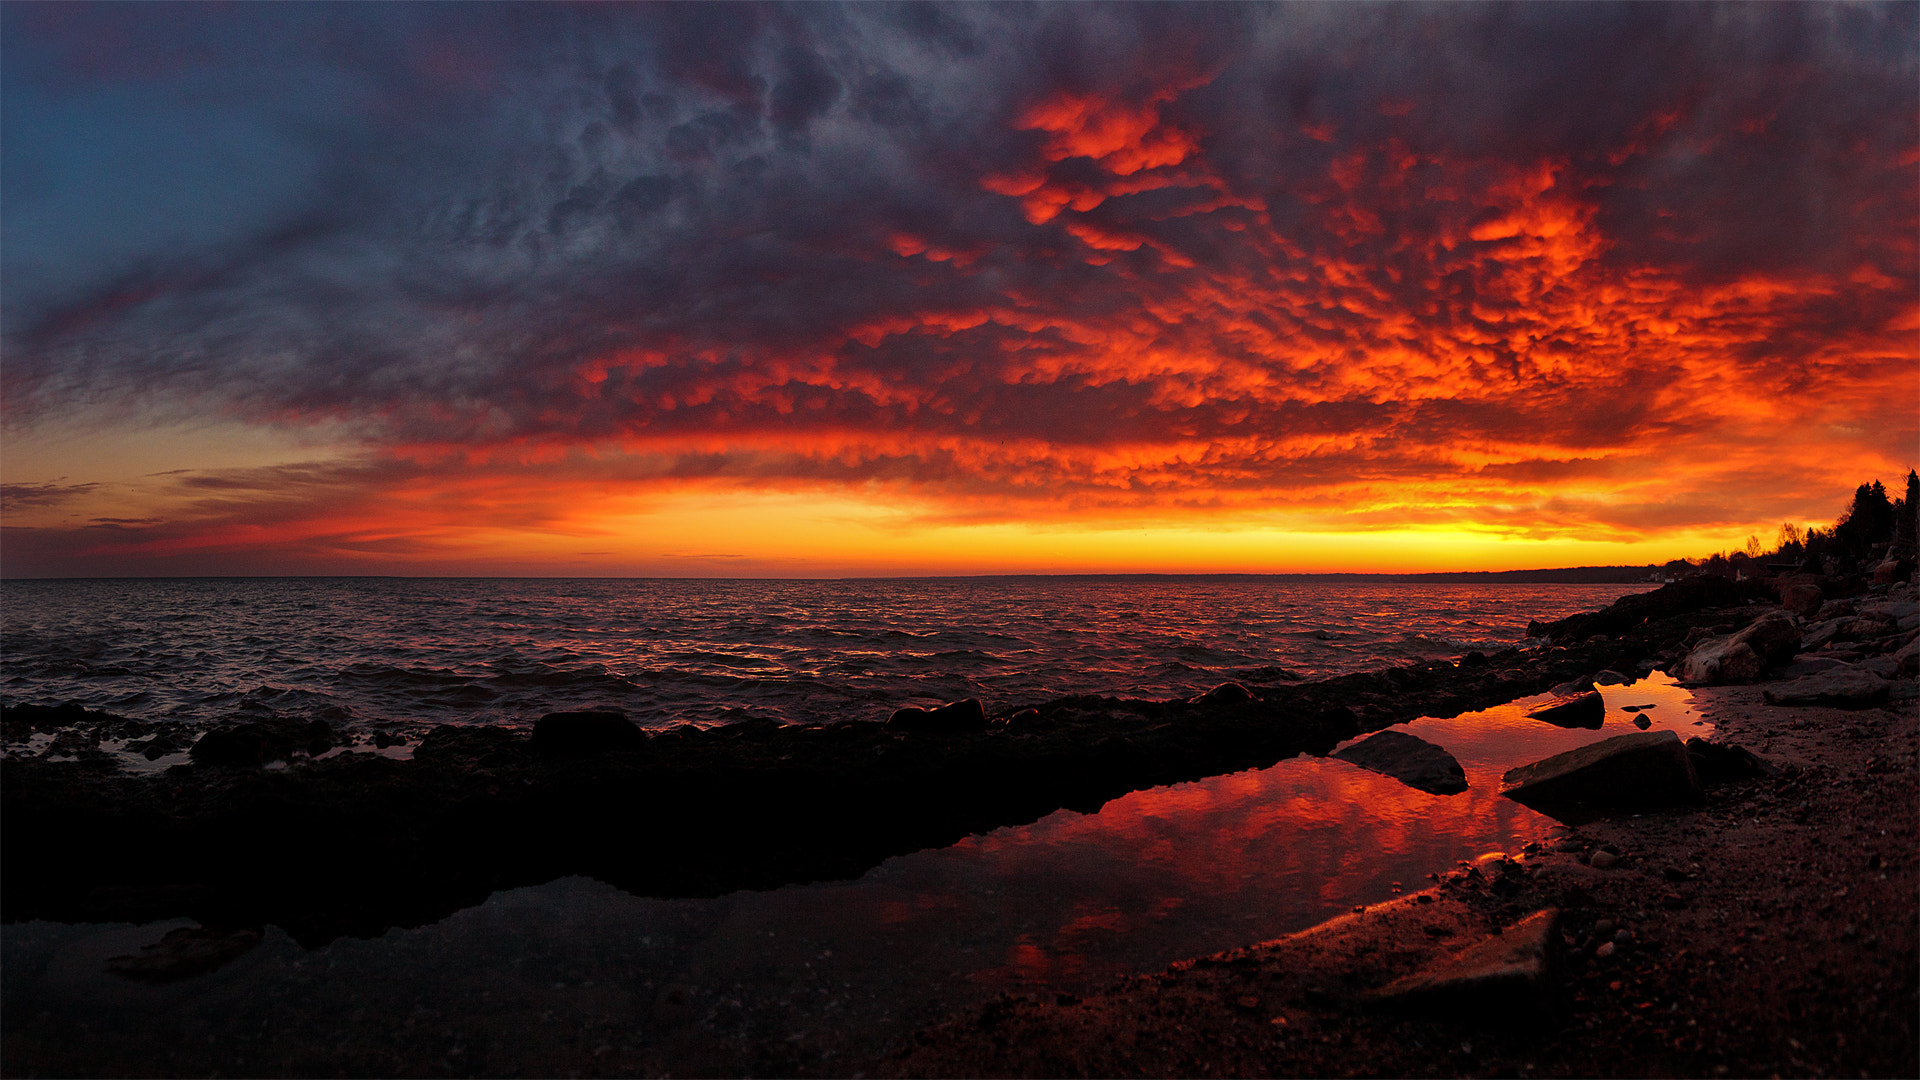 Photograph December sunrise over lake Ontario by Josh Owens on 500px